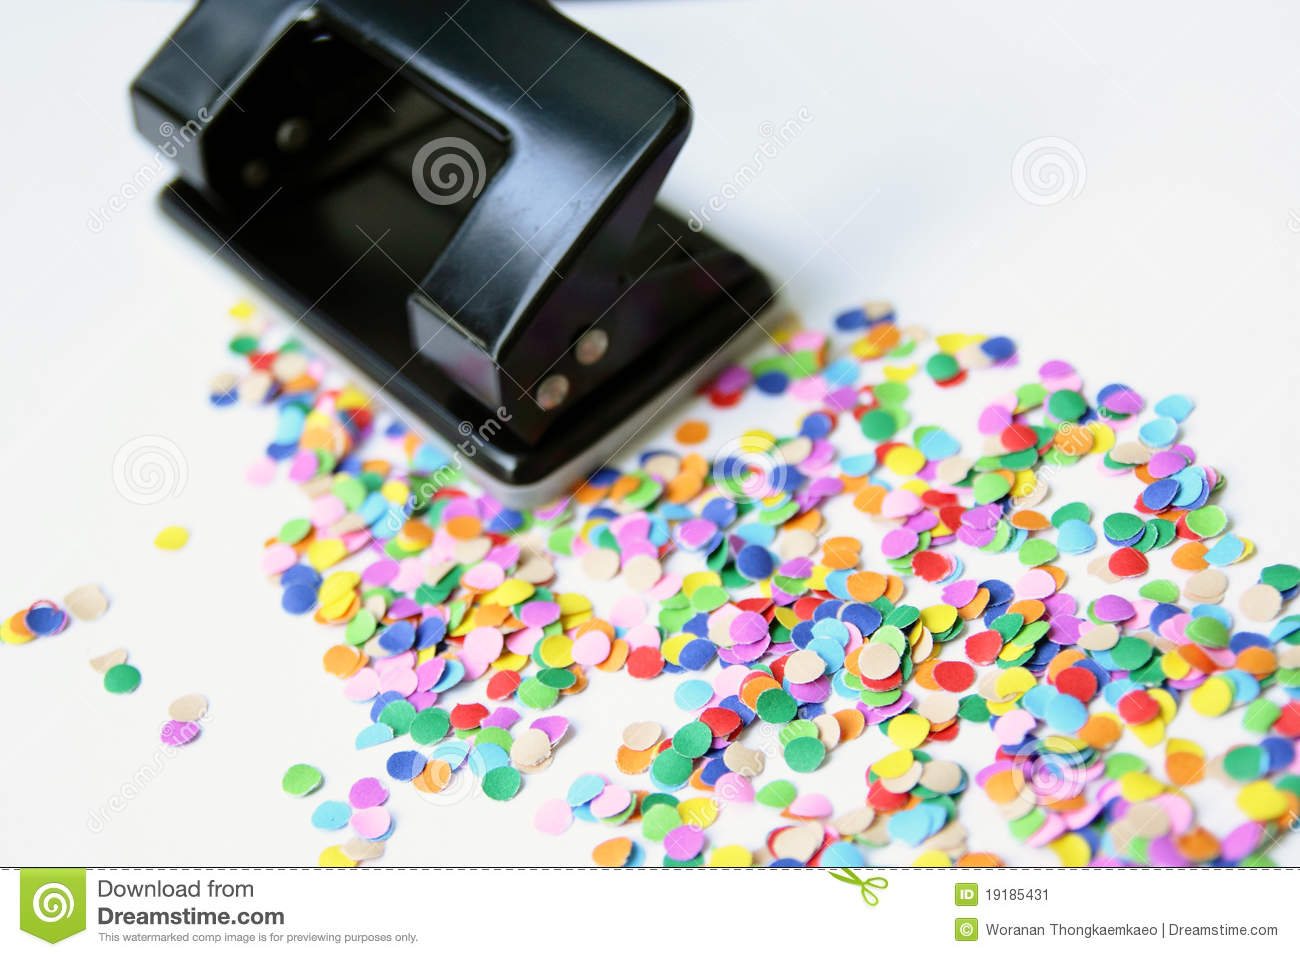 paper hole punch Press down on the three-hole punch with one sheet of scrap paper slowly and view what each coil is doing if the barrel is not inserted into the coil or if any of the barrel casings have loosened, the punch will stop working.